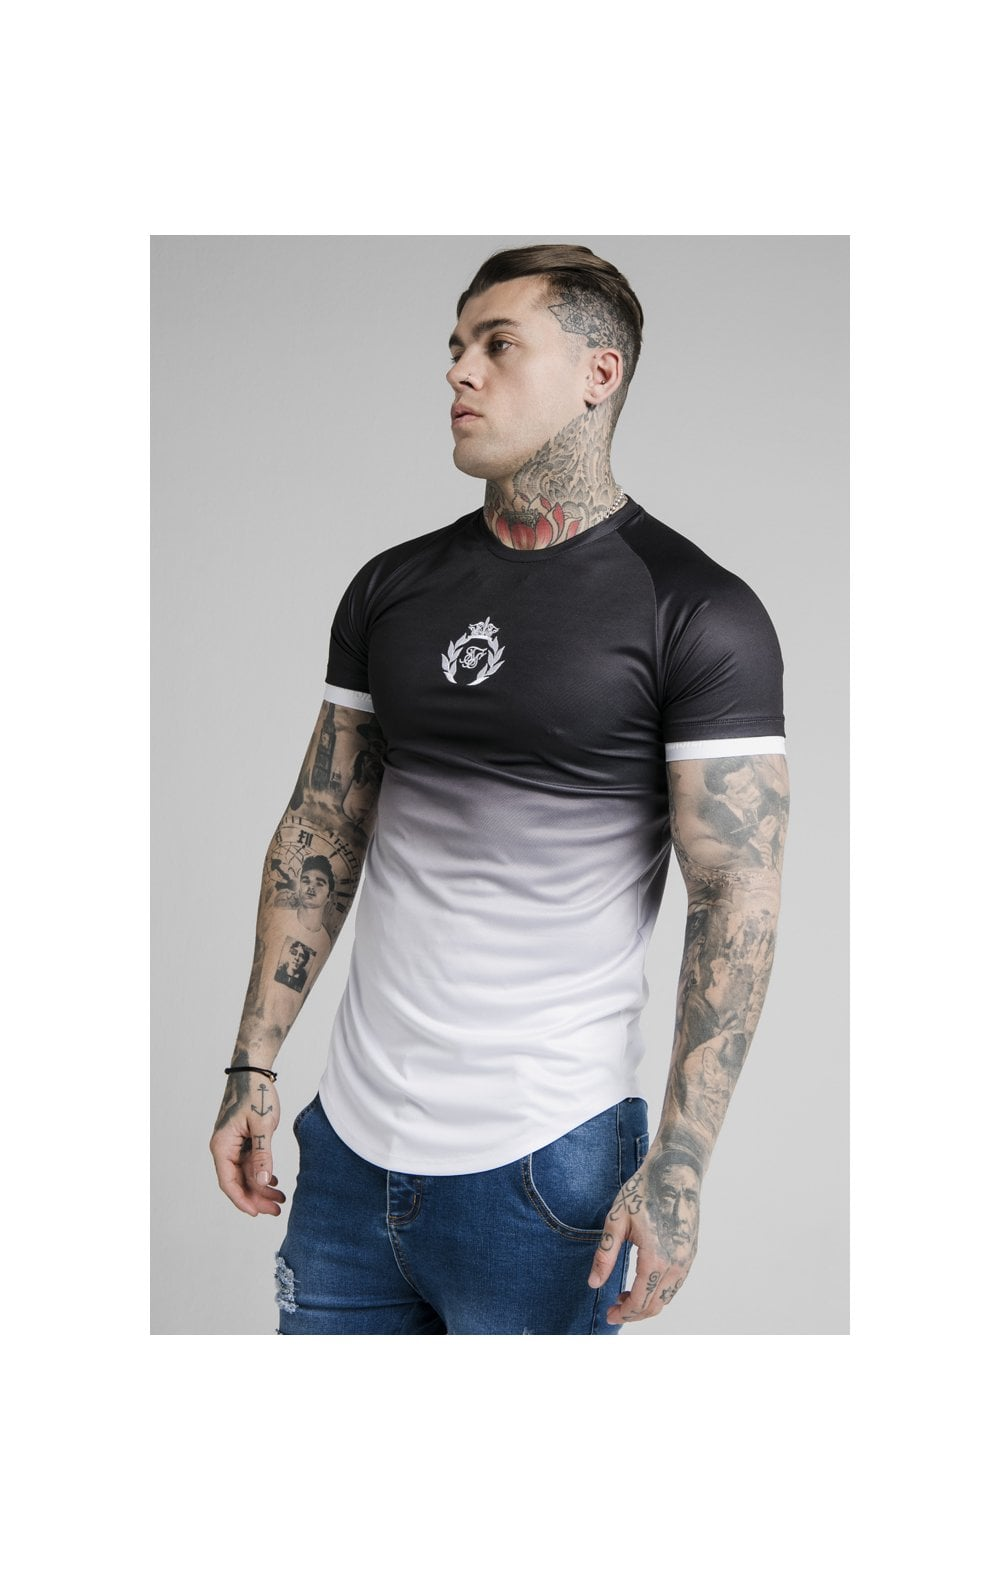 Load image into Gallery viewer, SikSilk S/S Prestige Fade Inset Tech Tee - Black & White